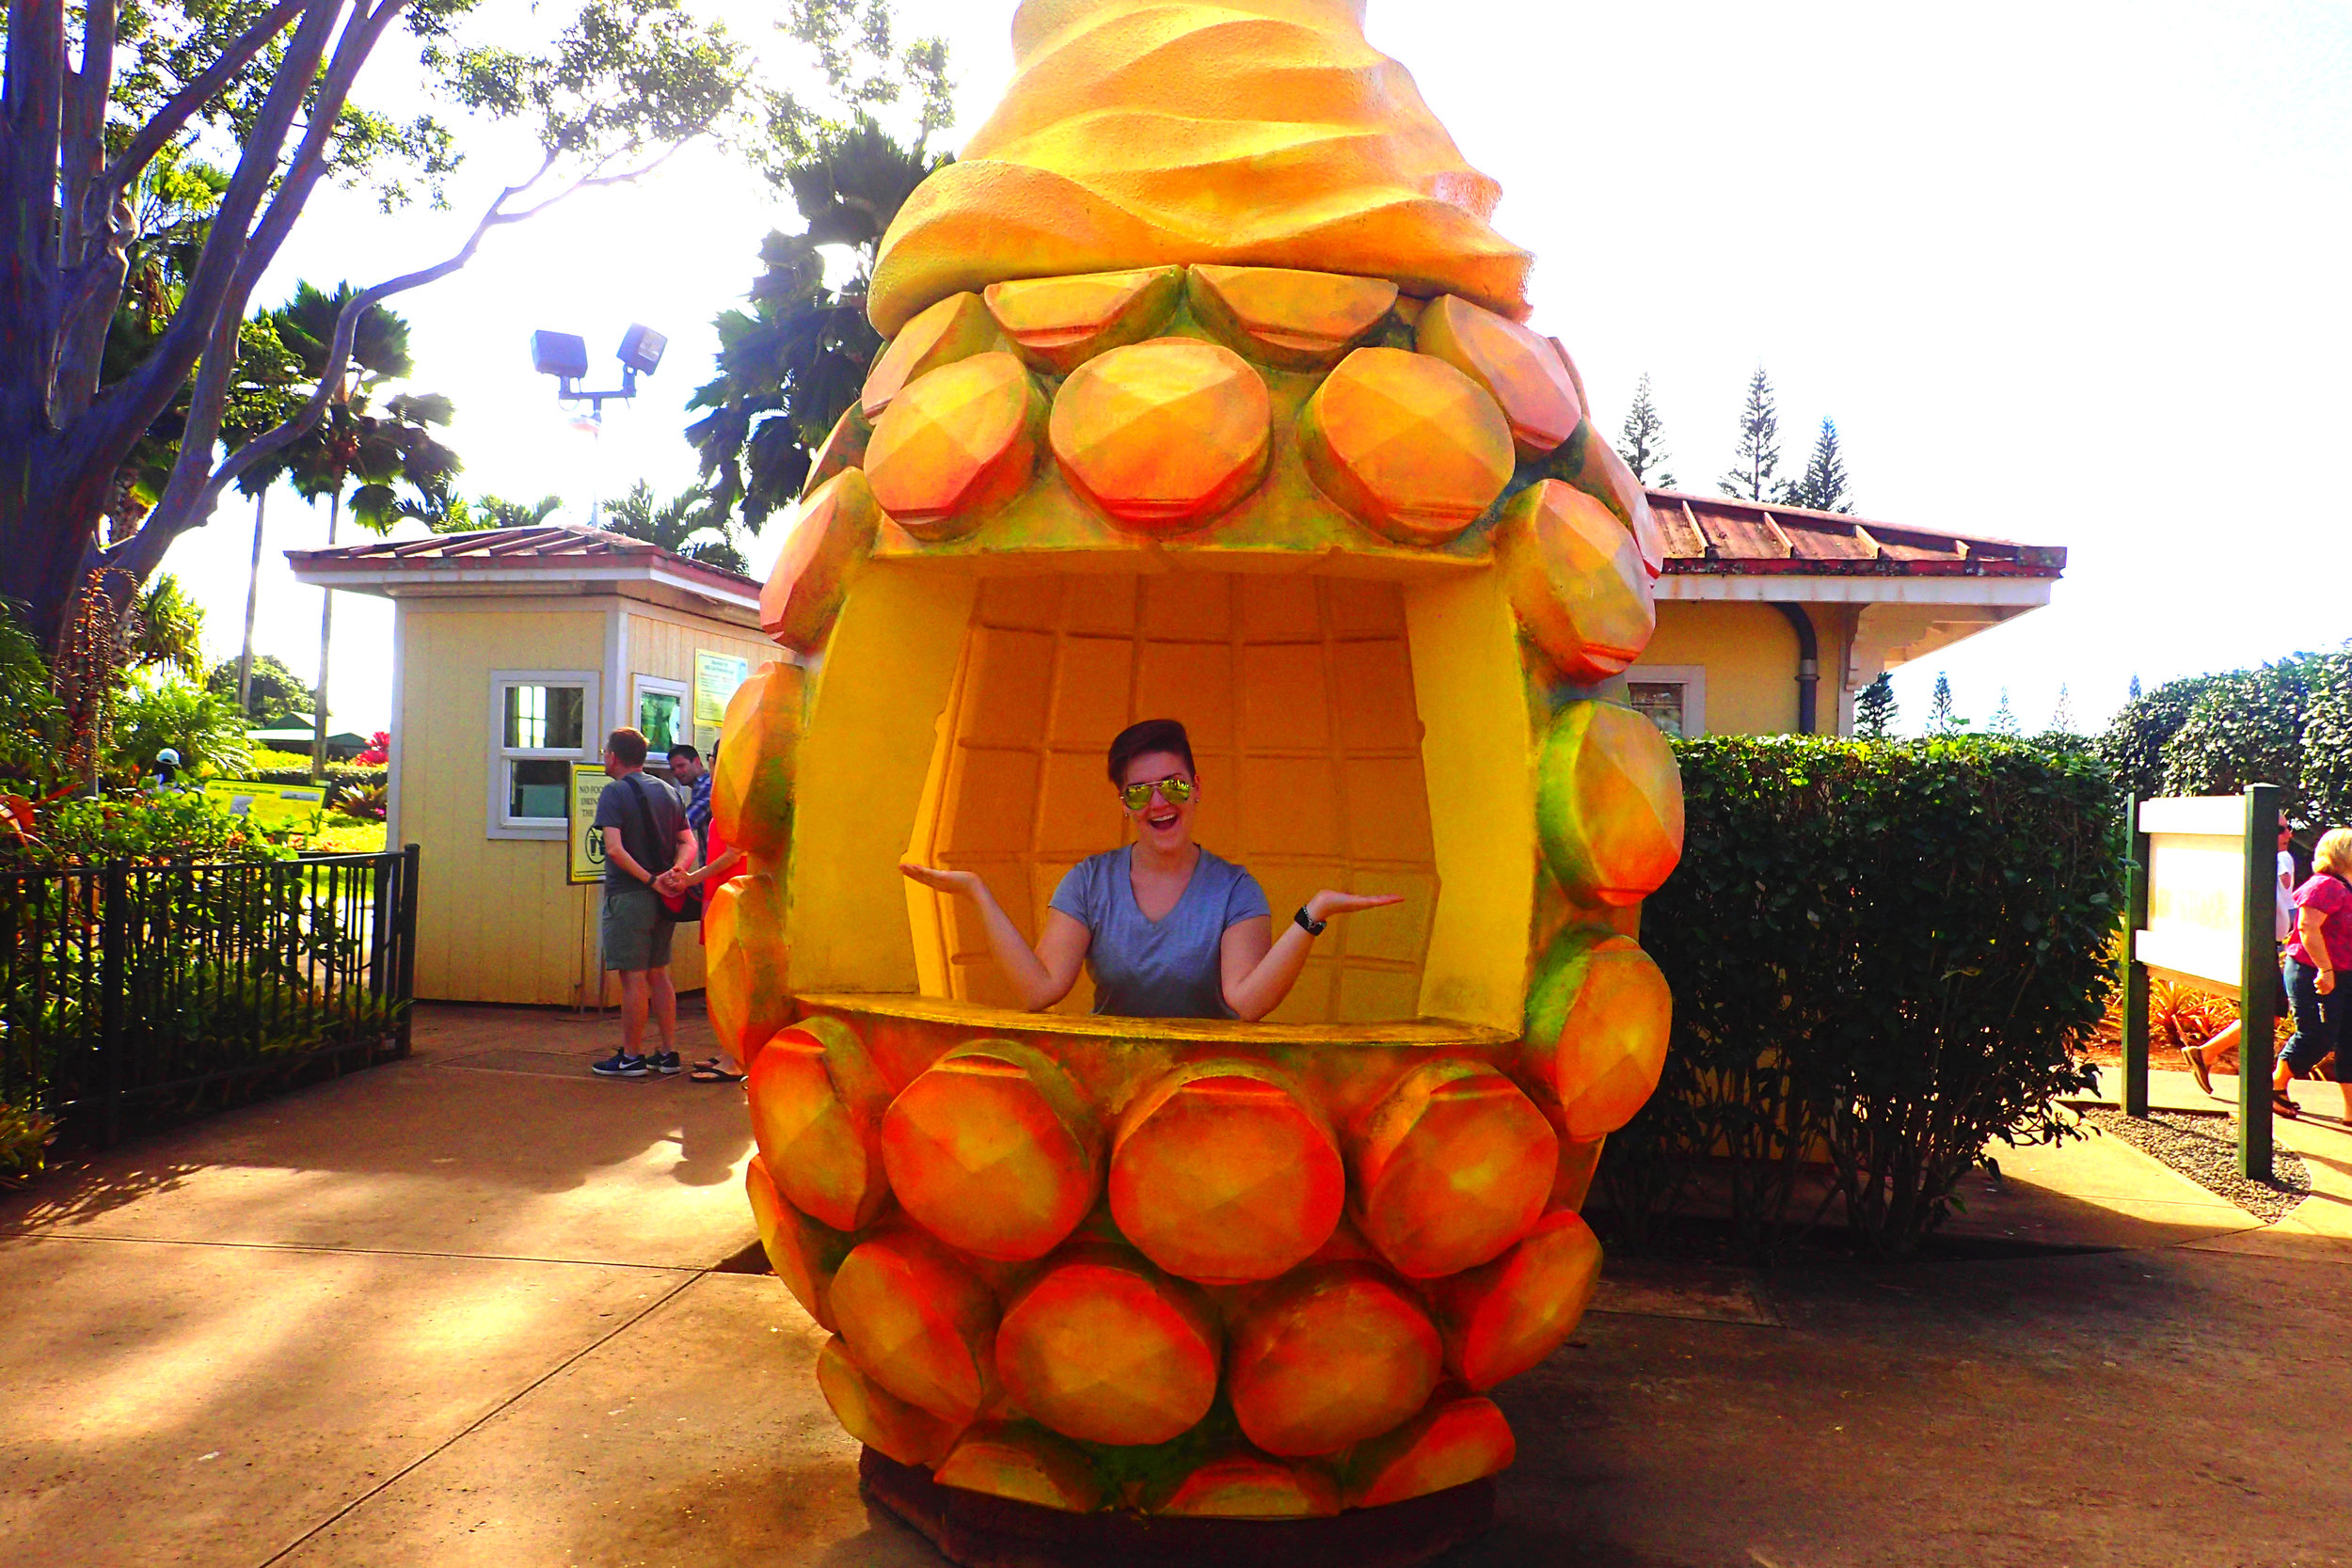 The World S Largest Pineapple Maze At Hawaii S Dole Plantation Deviating The Norm